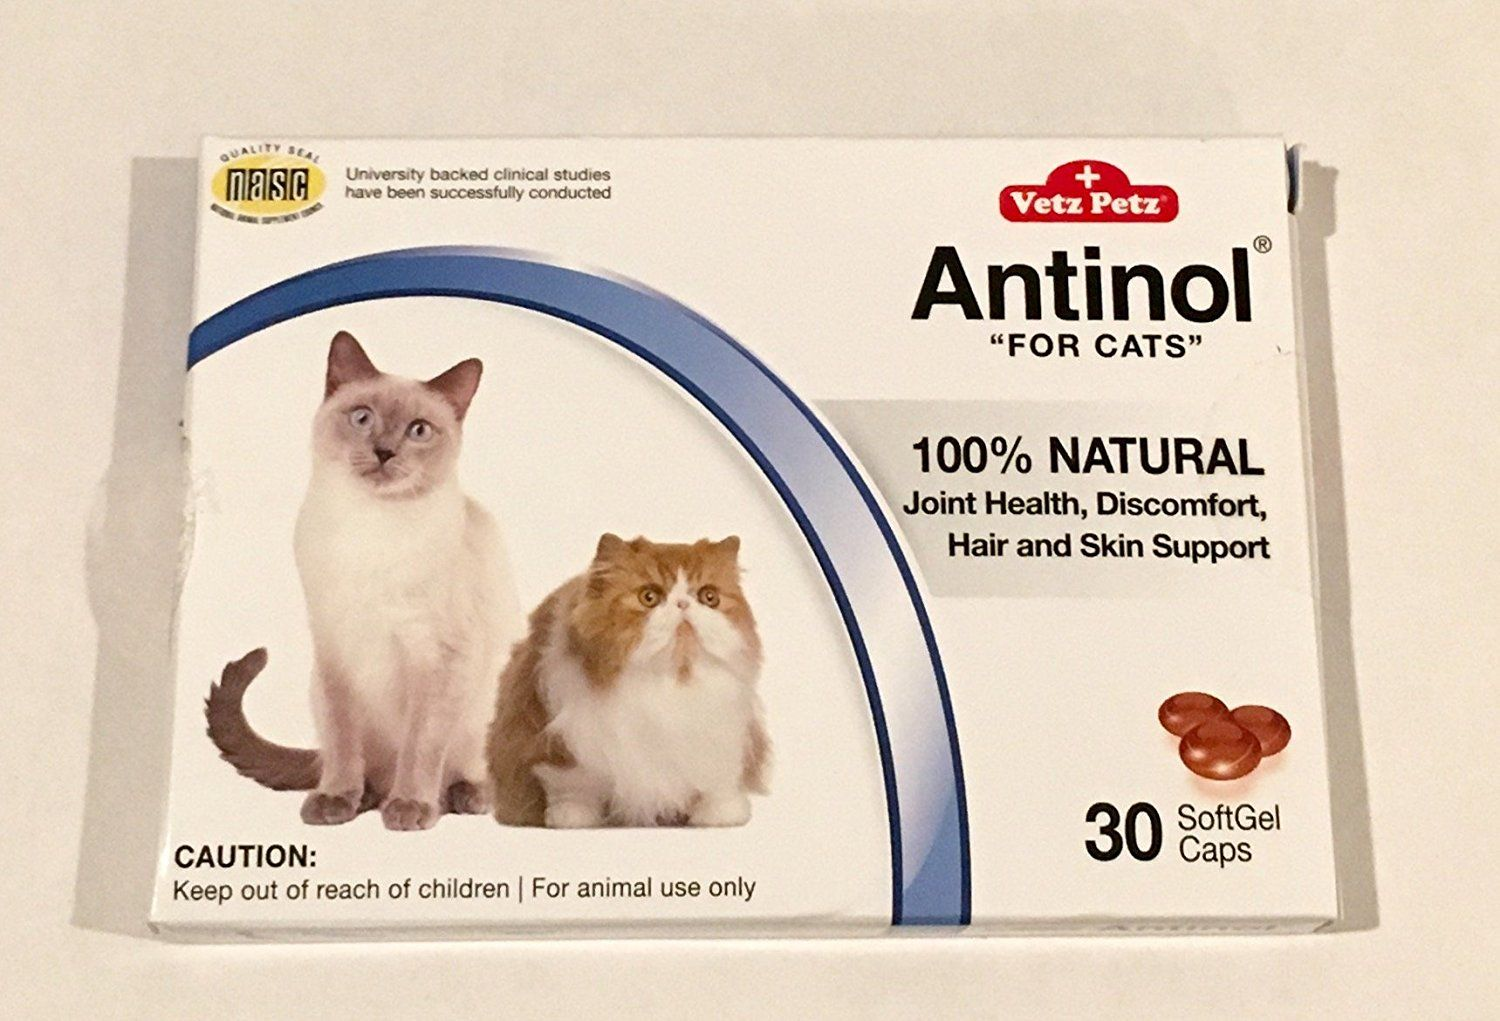 Antinol 30 Count Joint Health Supplement For Cats Softgel Caps Read More At The Image Link This Is An Af Joint Health Joint Health Supplement Cat Health